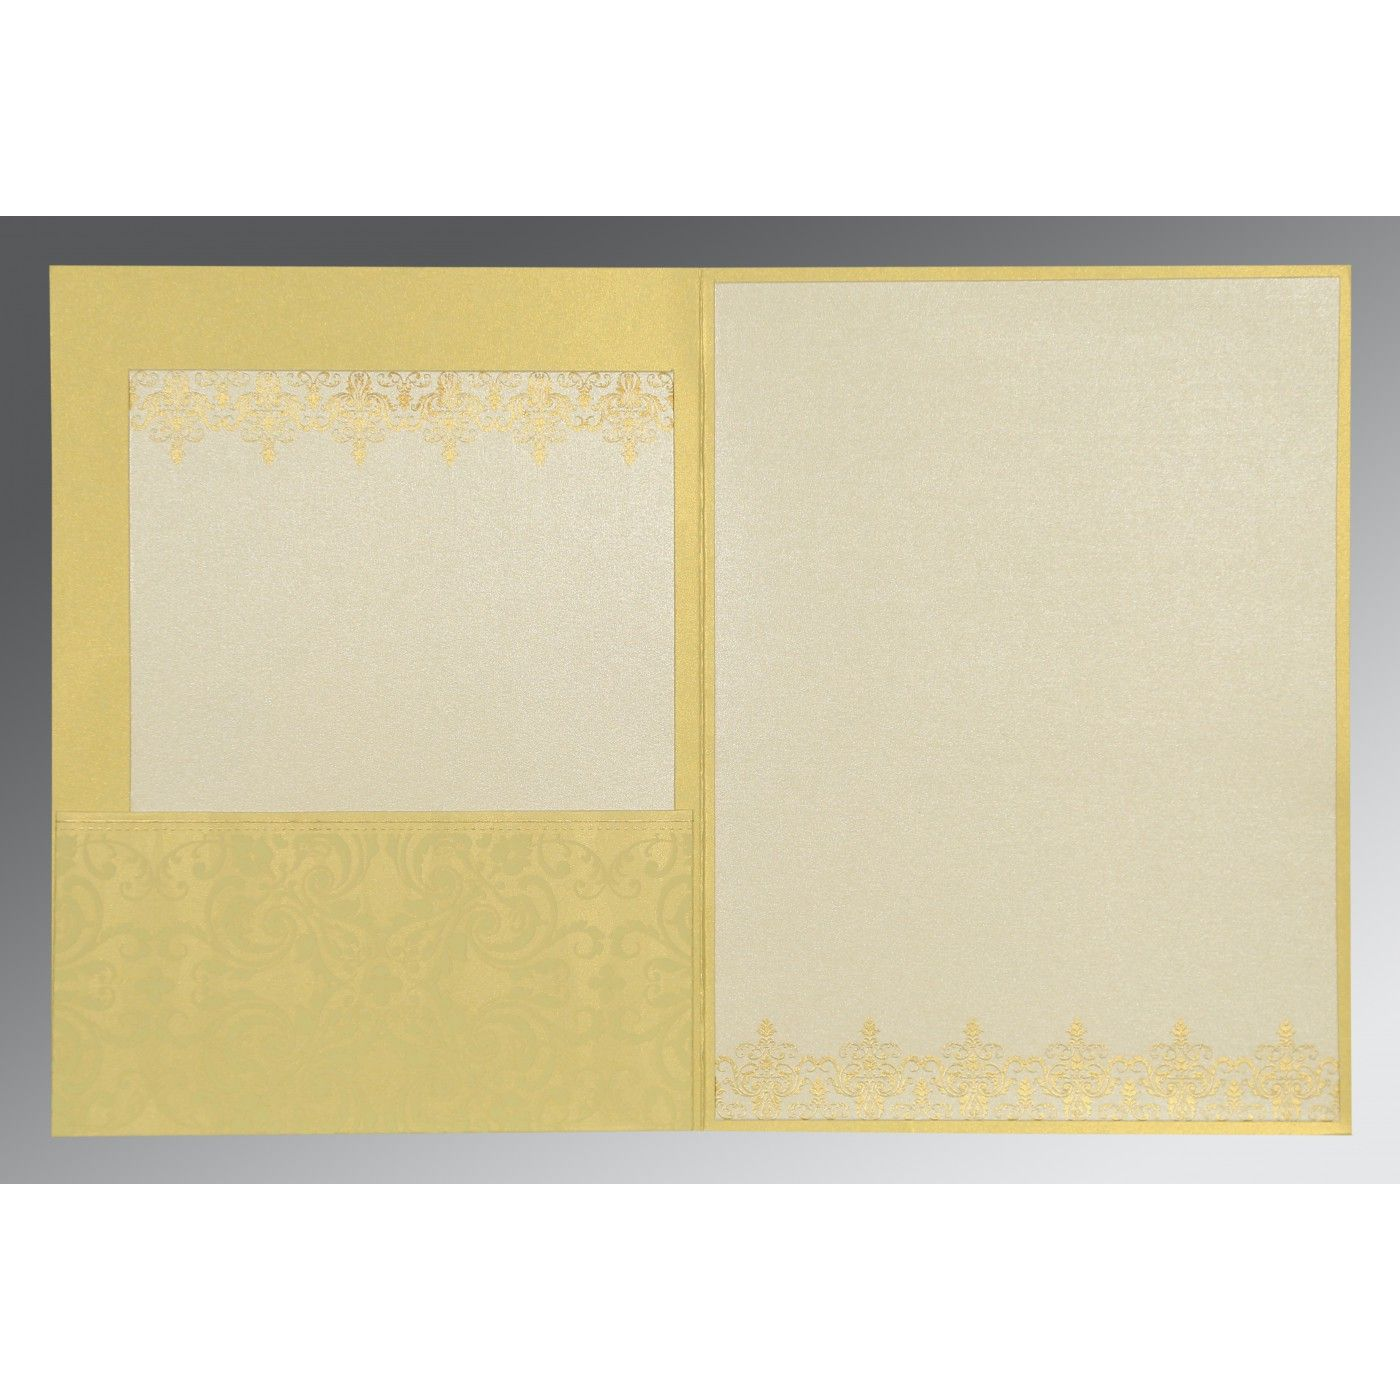 STRAW YELLOW SHIMMERY SCREEN PRINTED WEDDING CARD : CI-8244J - IndianWeddingCards